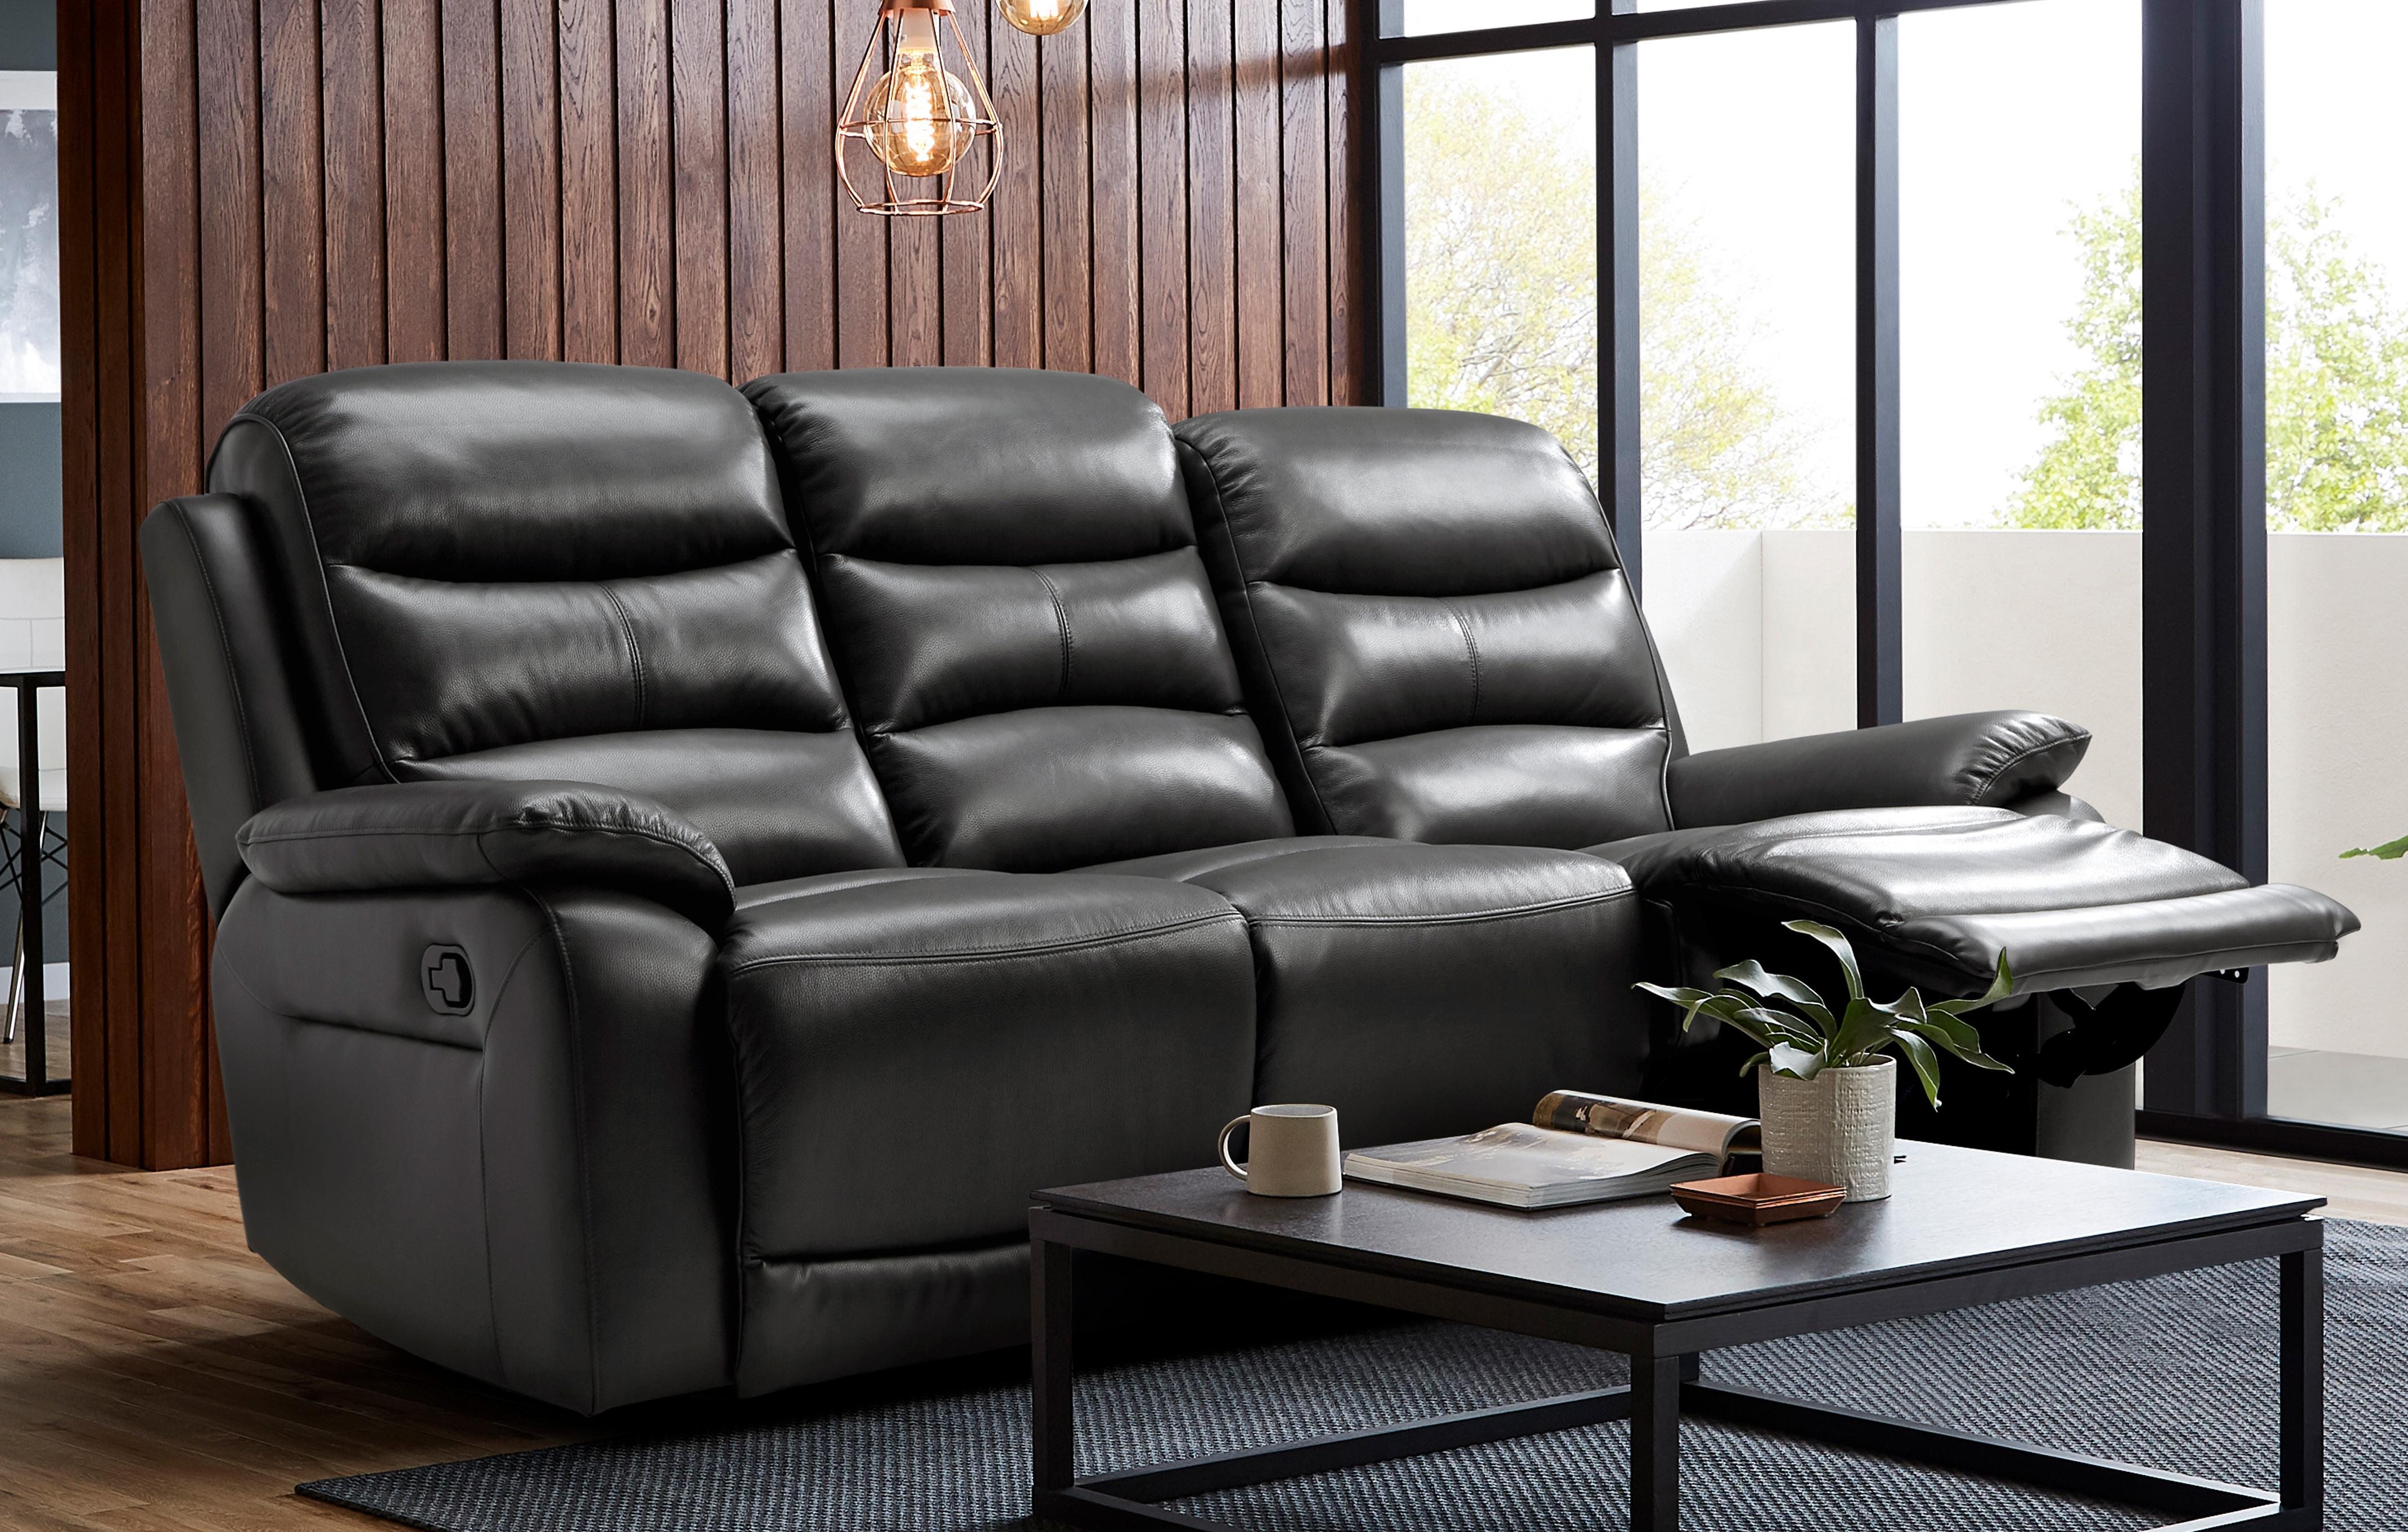 dfs metro sofa review cheap corner bed glasgow offers save at